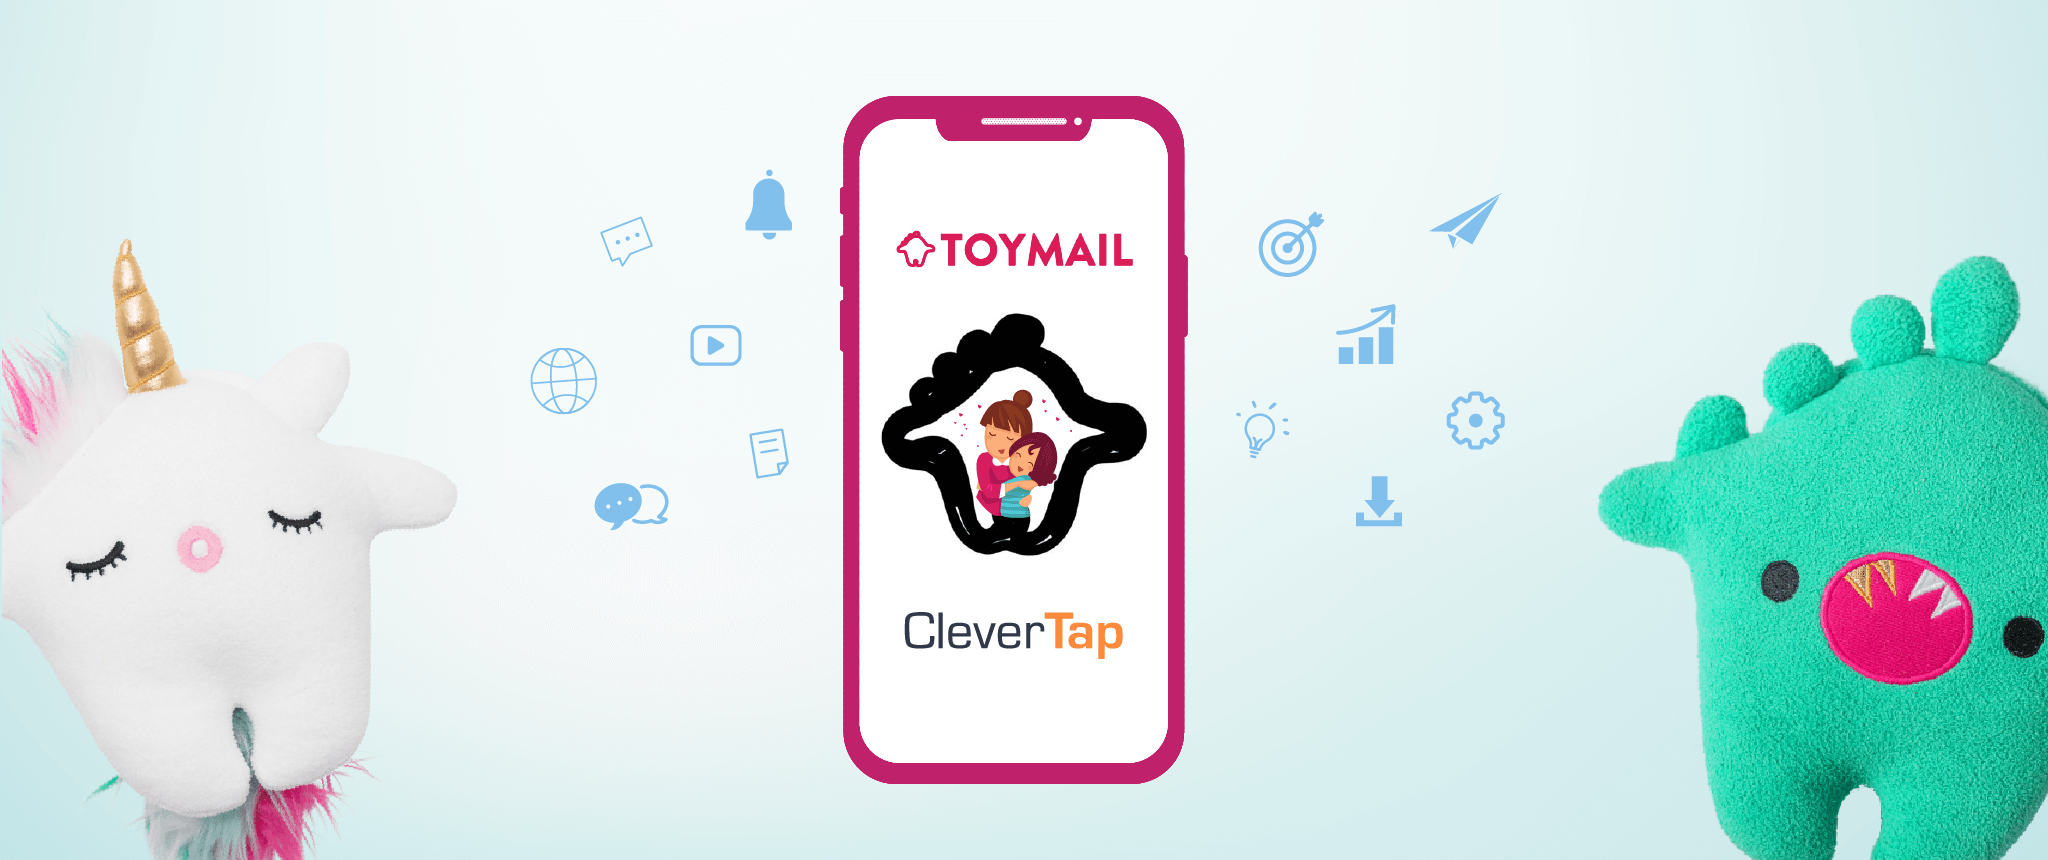 "From Painstaking to Piece of Cake: Toymail's ""Clever"" Transition to Marketing Automation"